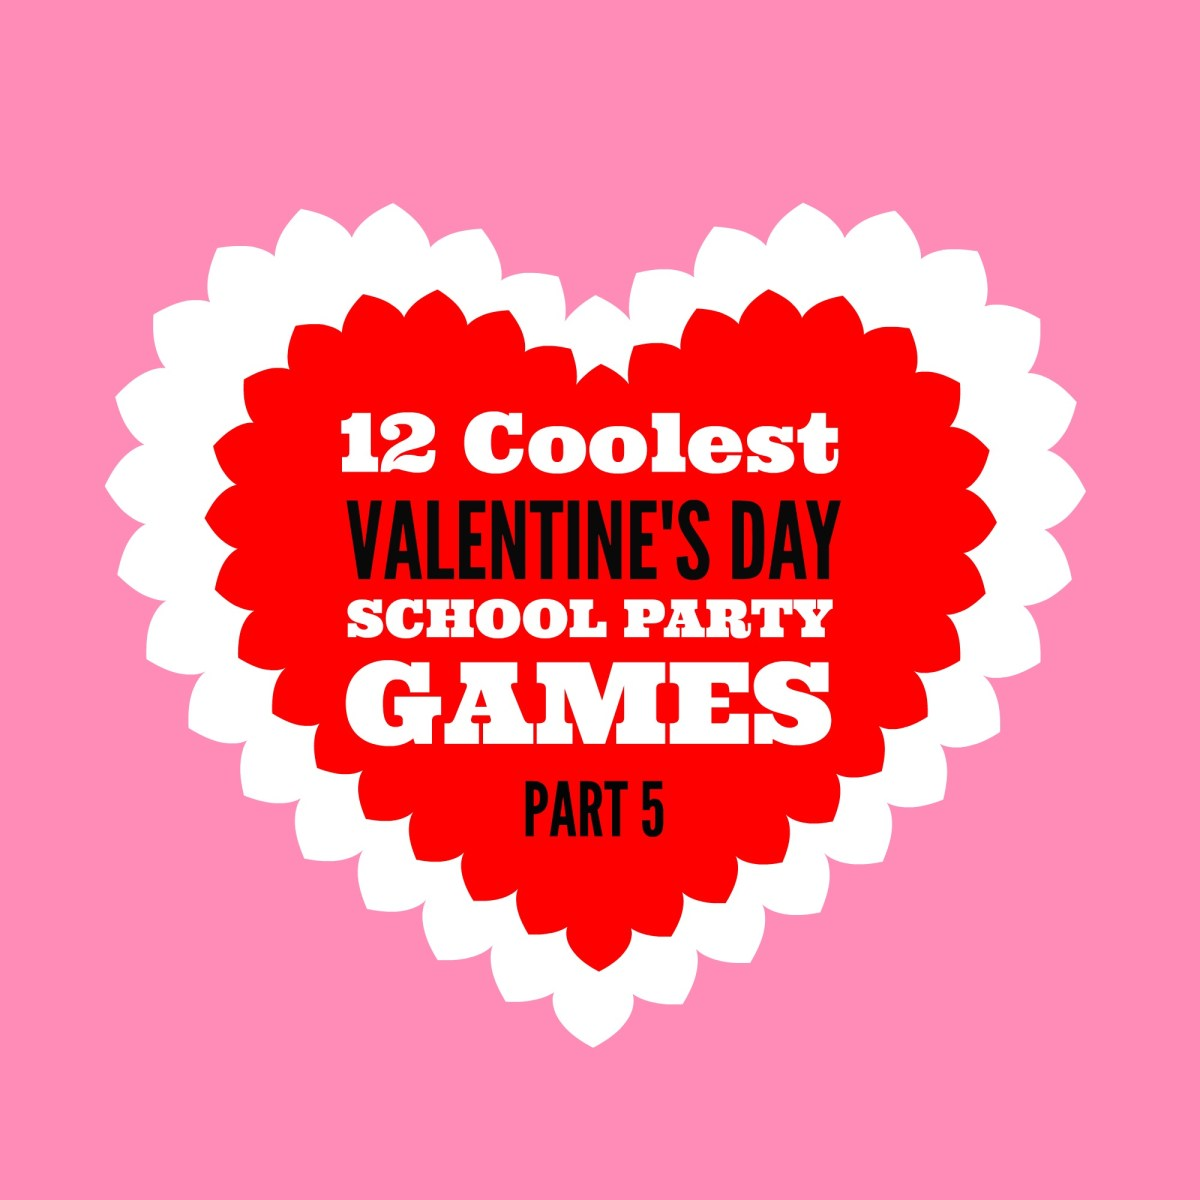 12 Coolest Valentine's Day School Party Games -- Part 5